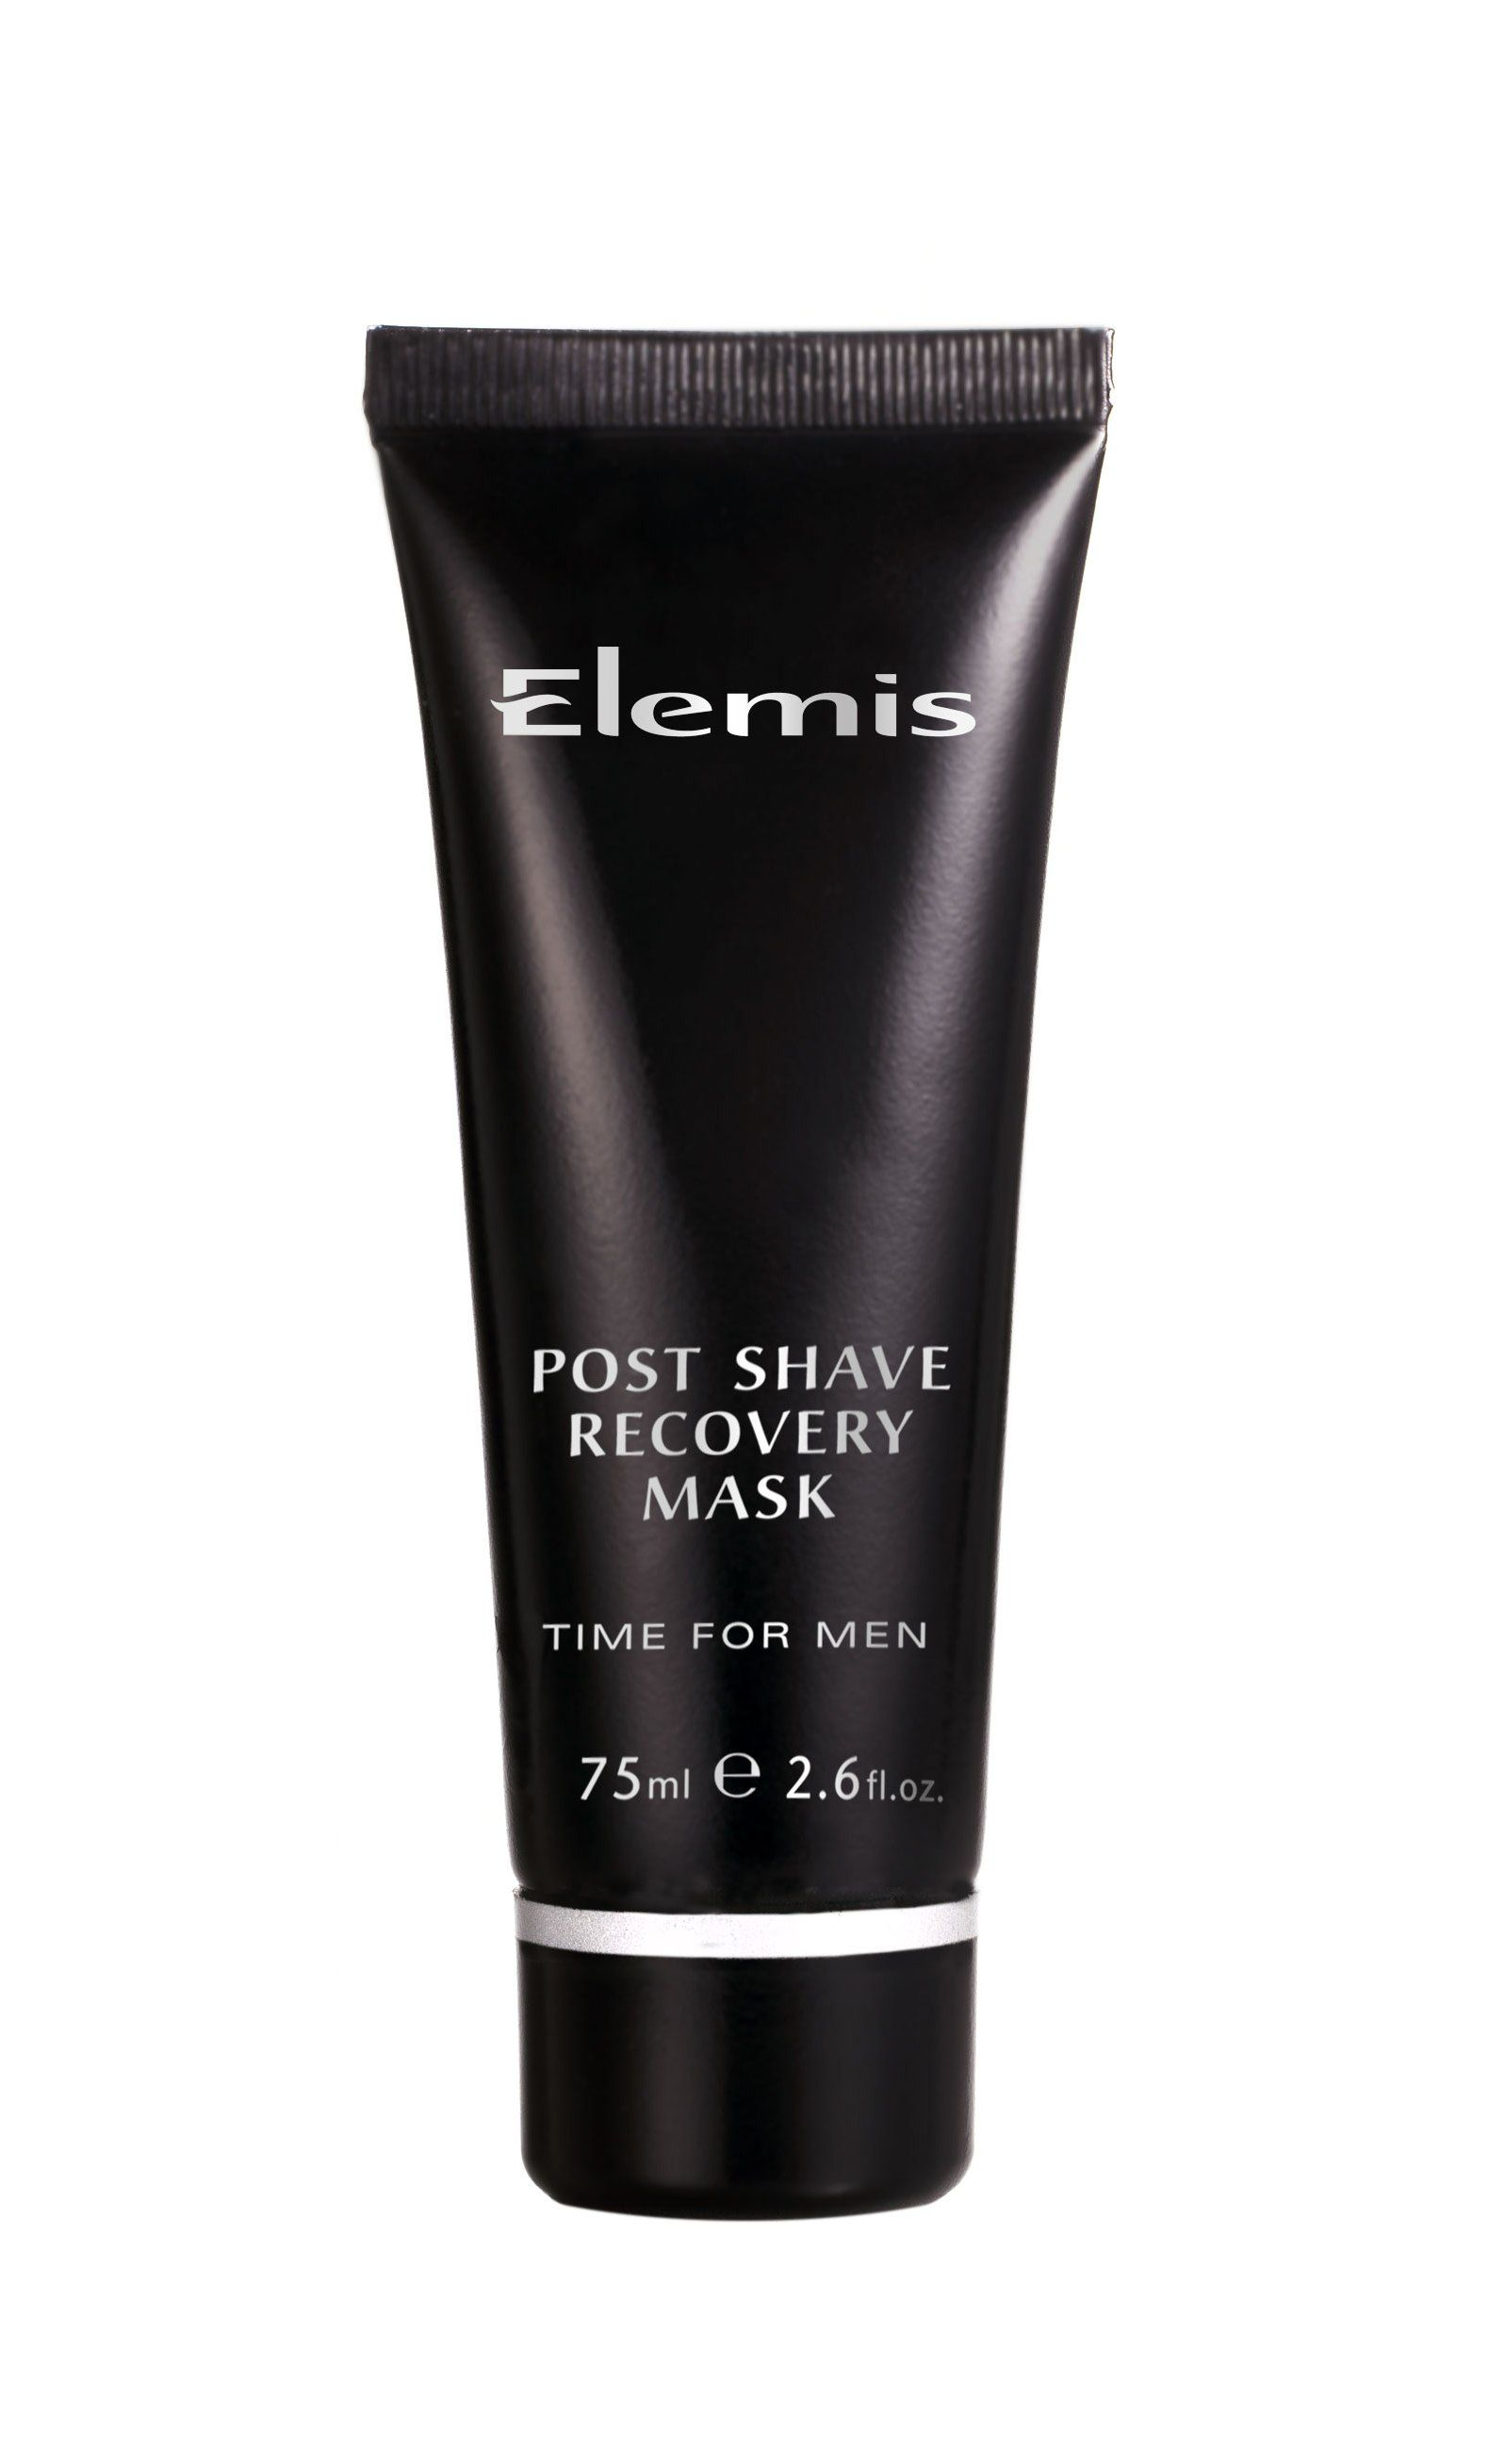 Time for Men Post Shave Recovery Mask